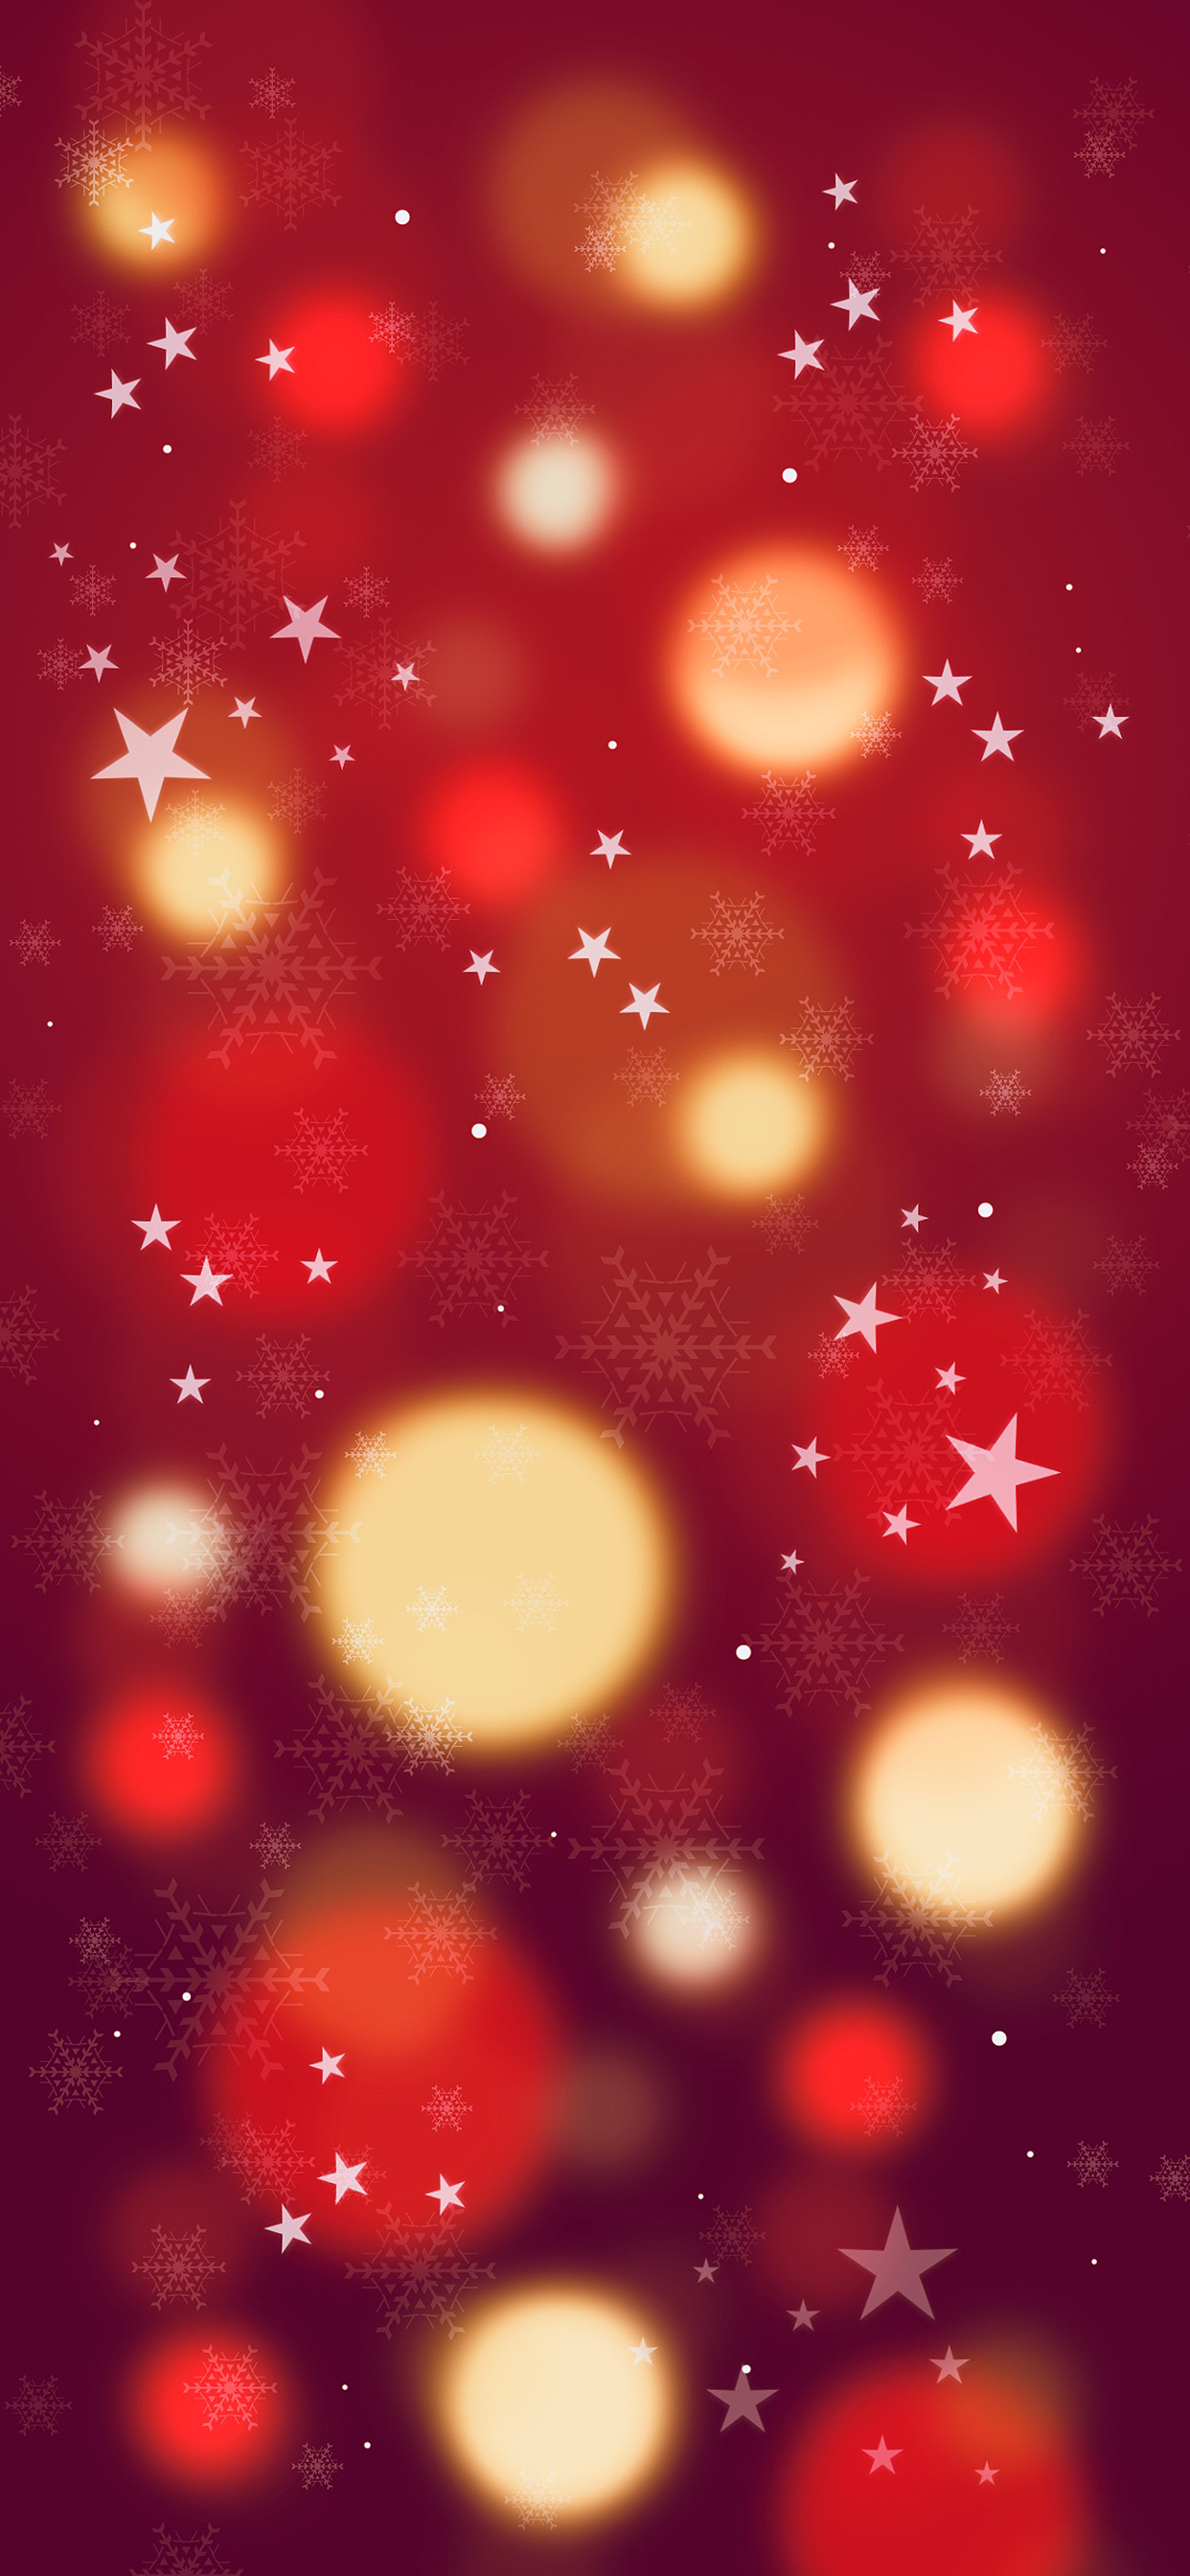 Christmas Classic iPhone wallpaper AR72014